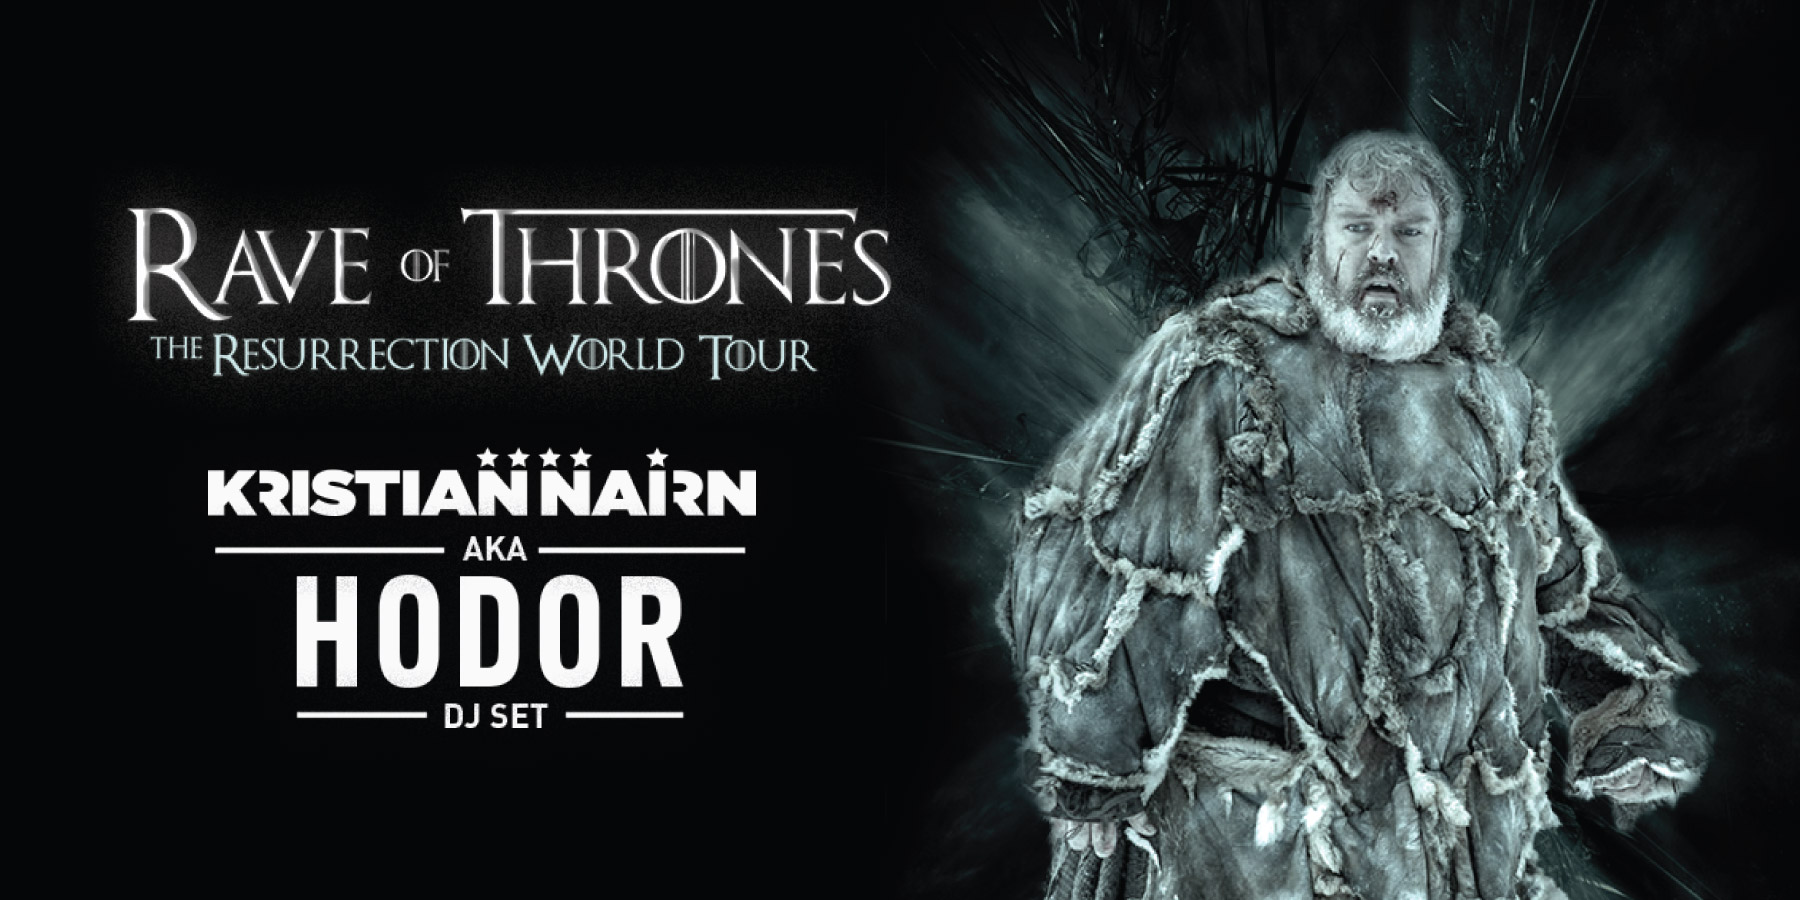 Kristian Nairn (aka Hodor from Game of Thrones) presents Rave of Thrones